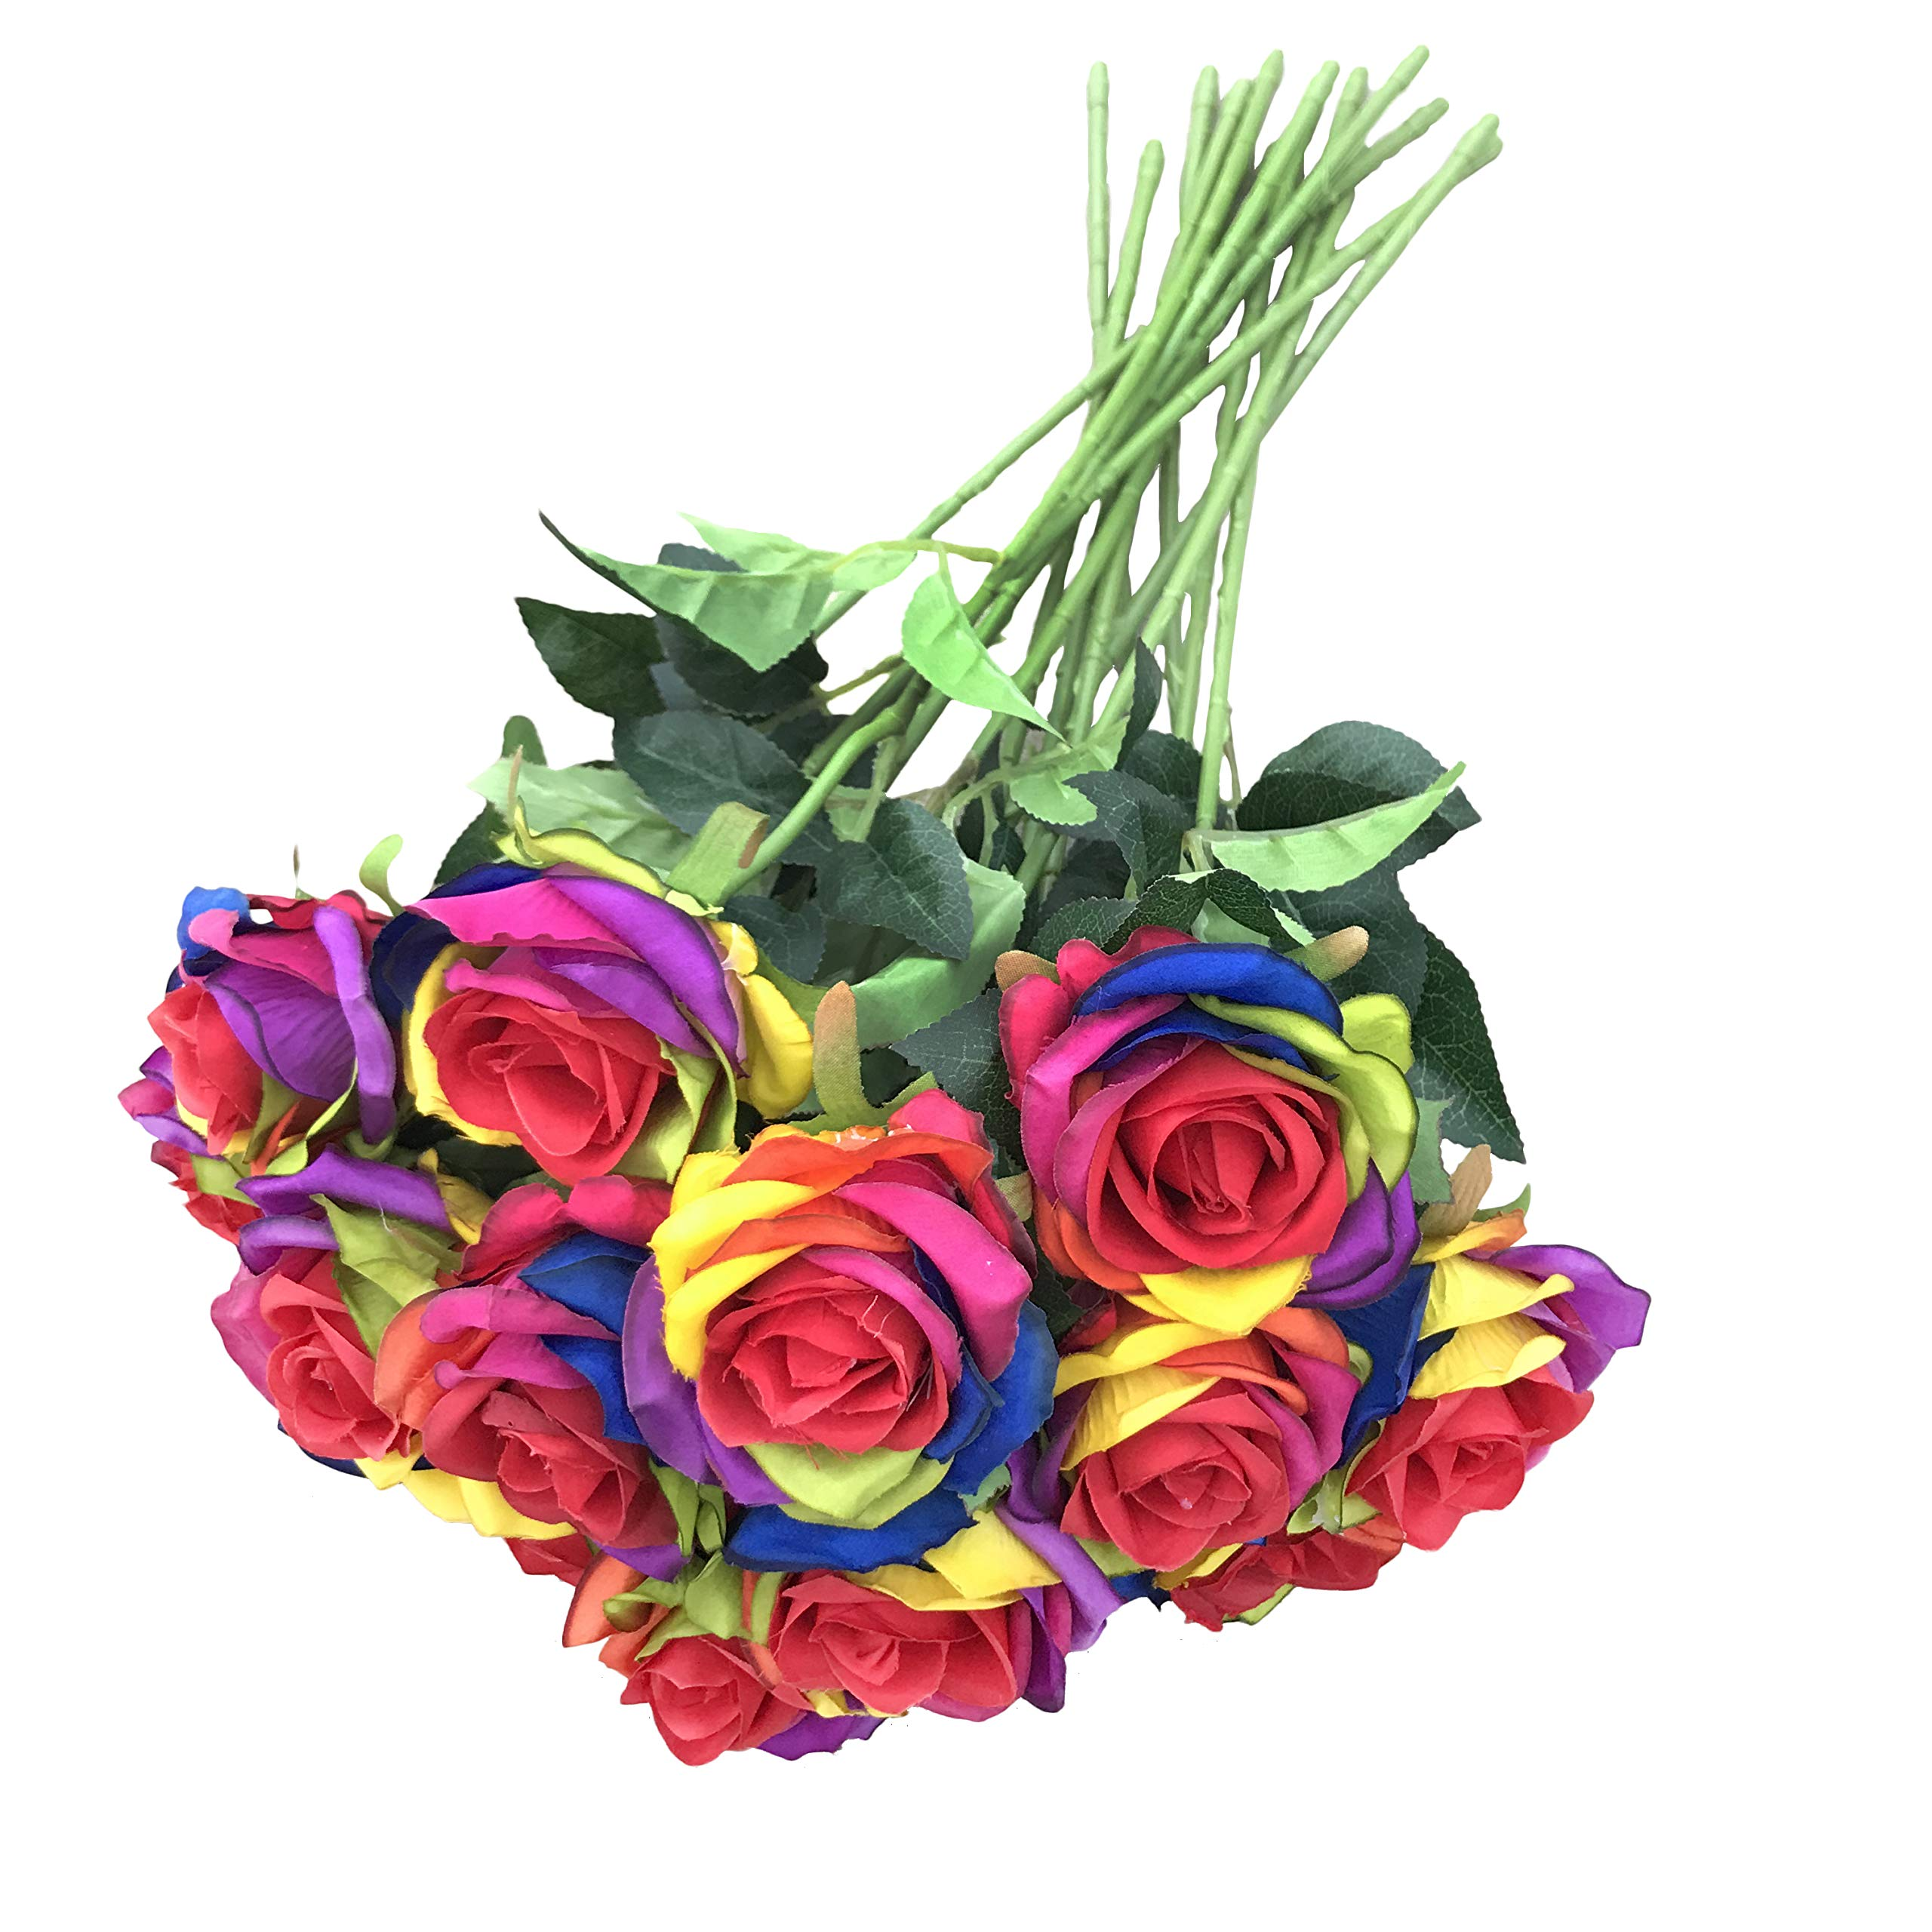 Dalamoda Wholesale 15pcs Artificial Silk Rose Flower Rainbow Roses Flowers Diy Bridal Bouquet Flower Or Diy Any Home Garden Decoration Pack Of